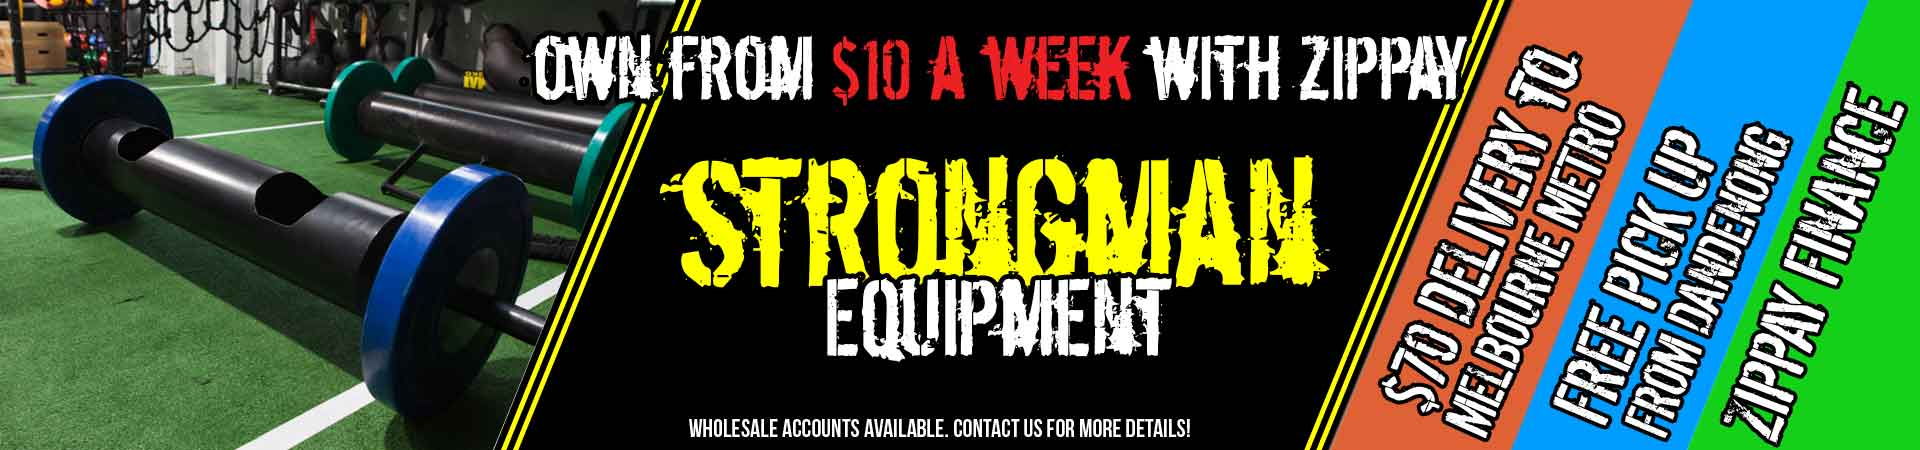 MA1 Strongman Equipment Australia